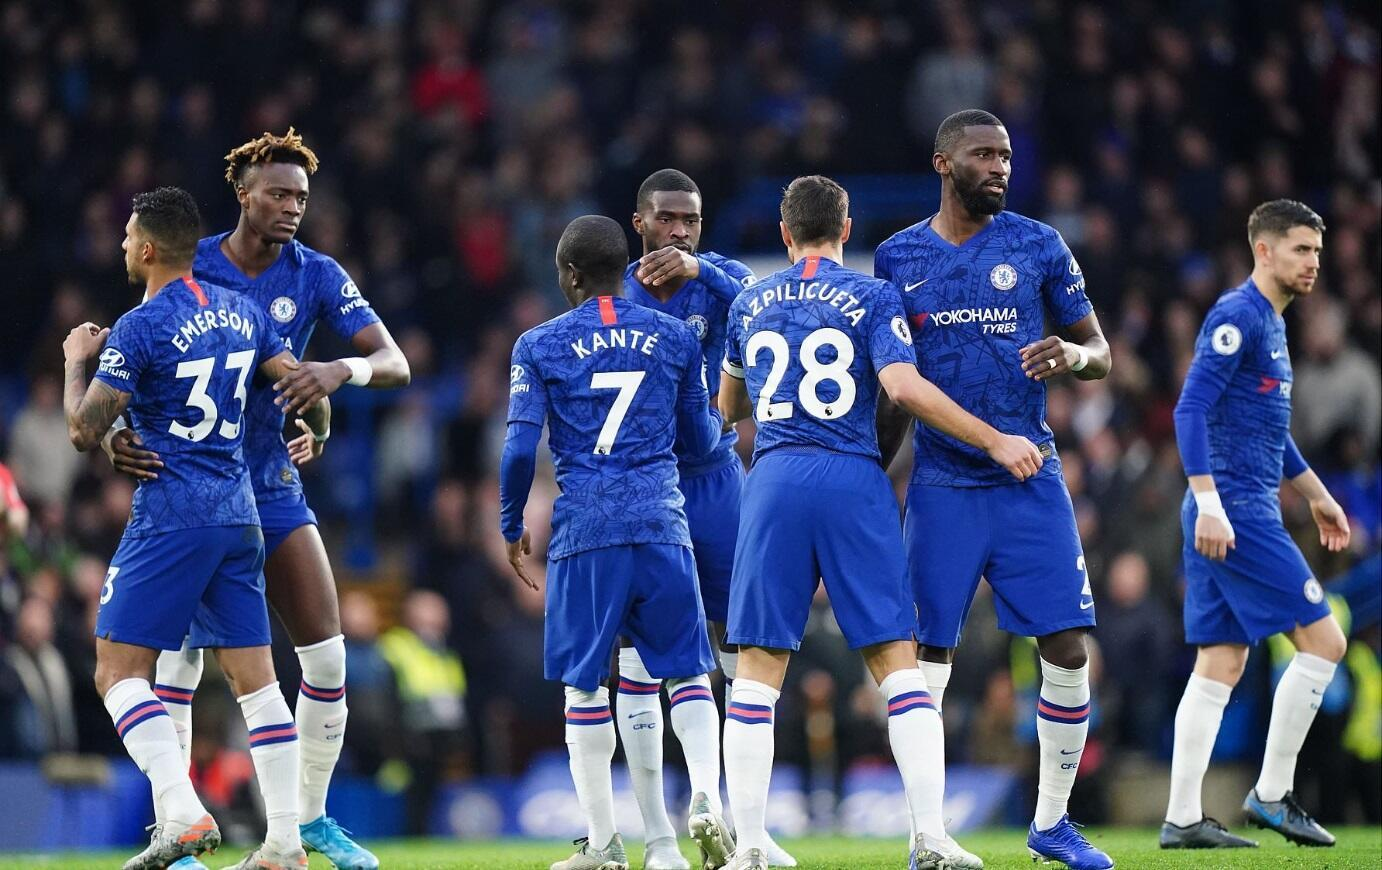 Chelsea Reports Major Loss After Season Out Of Champions